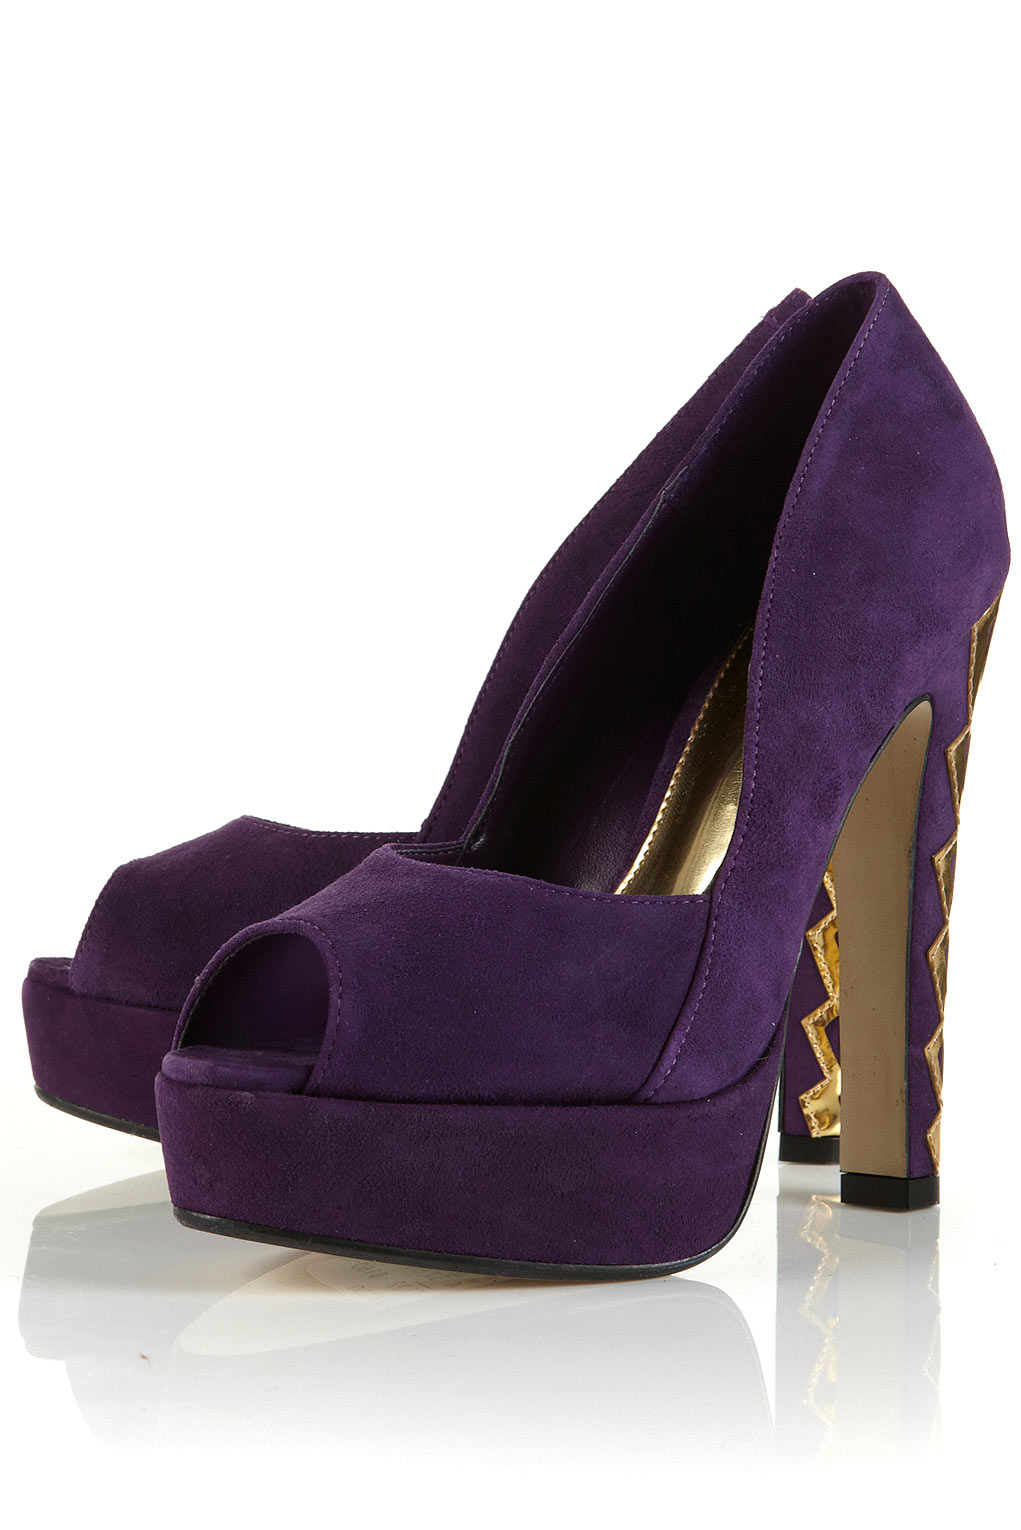 Purple Suede Peep Toe Heels